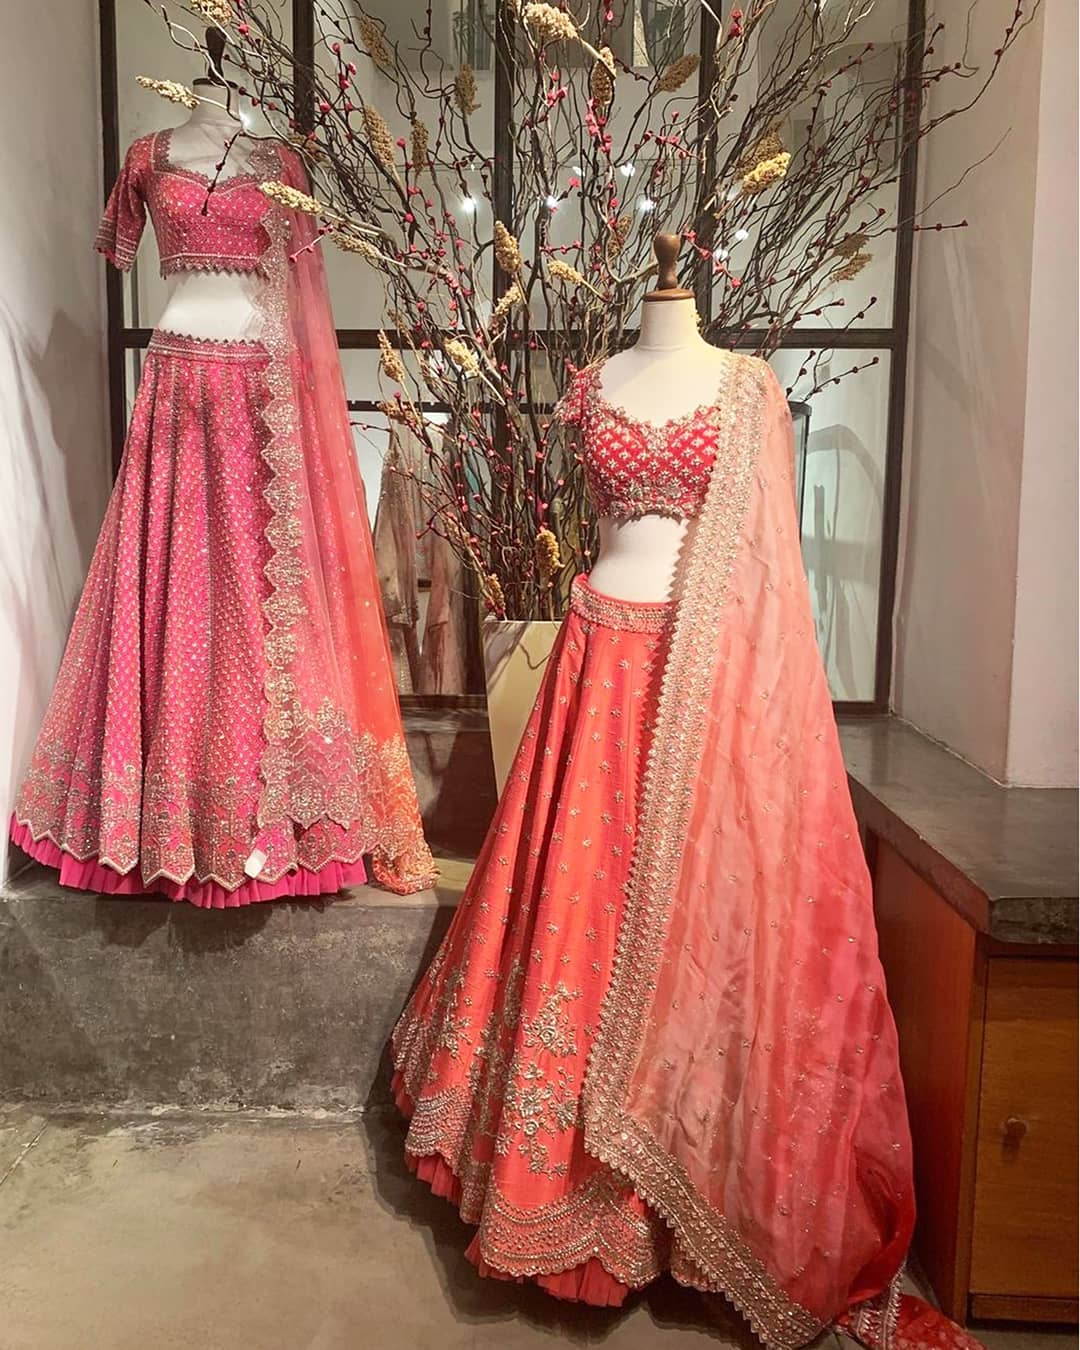 A fun wedding curation from Anushree Reddy  peppered with delightful prints and embellishments. For more images help with selections and easy shopping from home please WhatsApp +91 9711-991998 and at +91 8448-529822. 2021-03-27